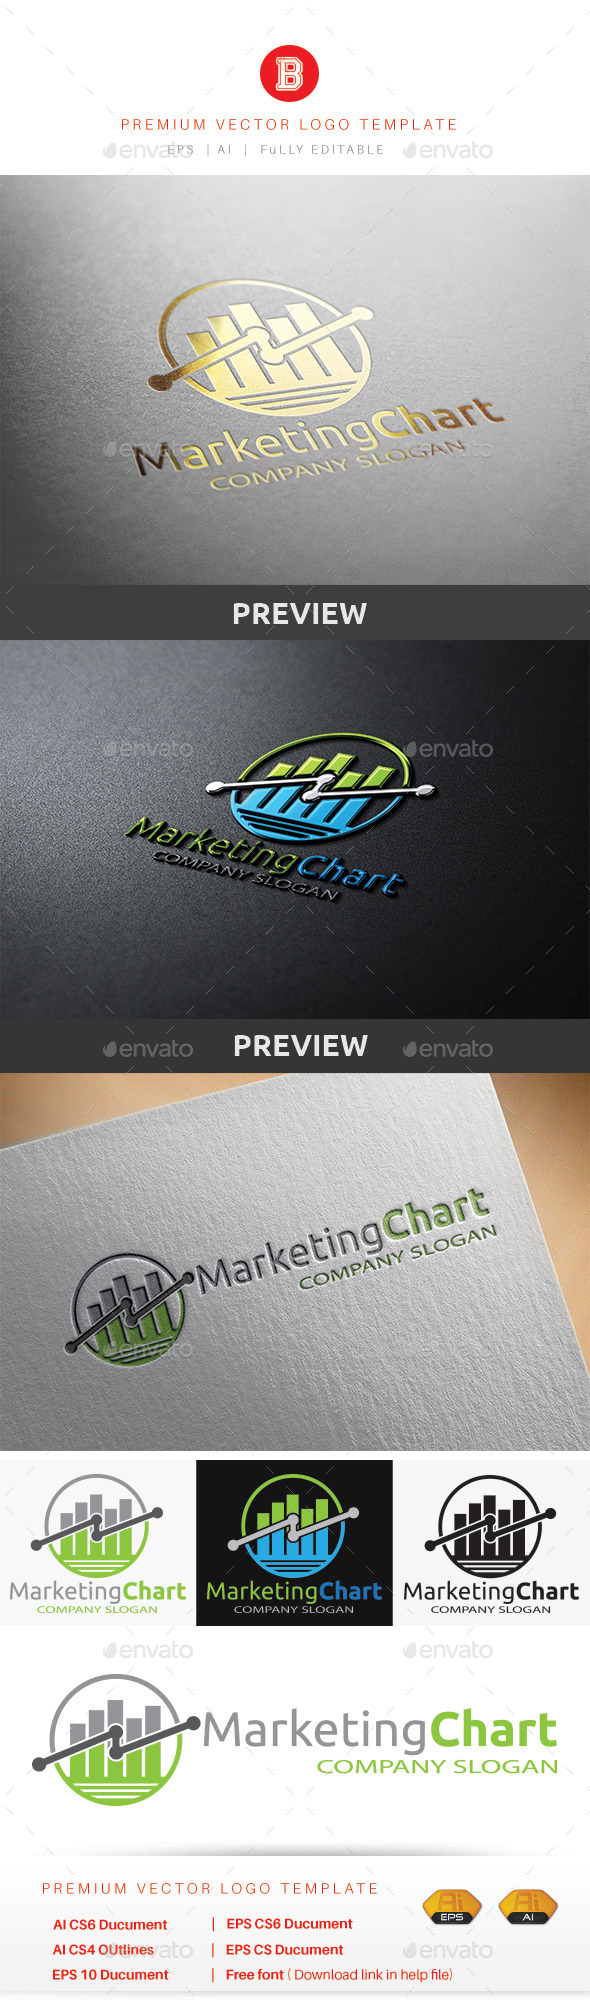 GraphicRiver Marketing Chart 8847240